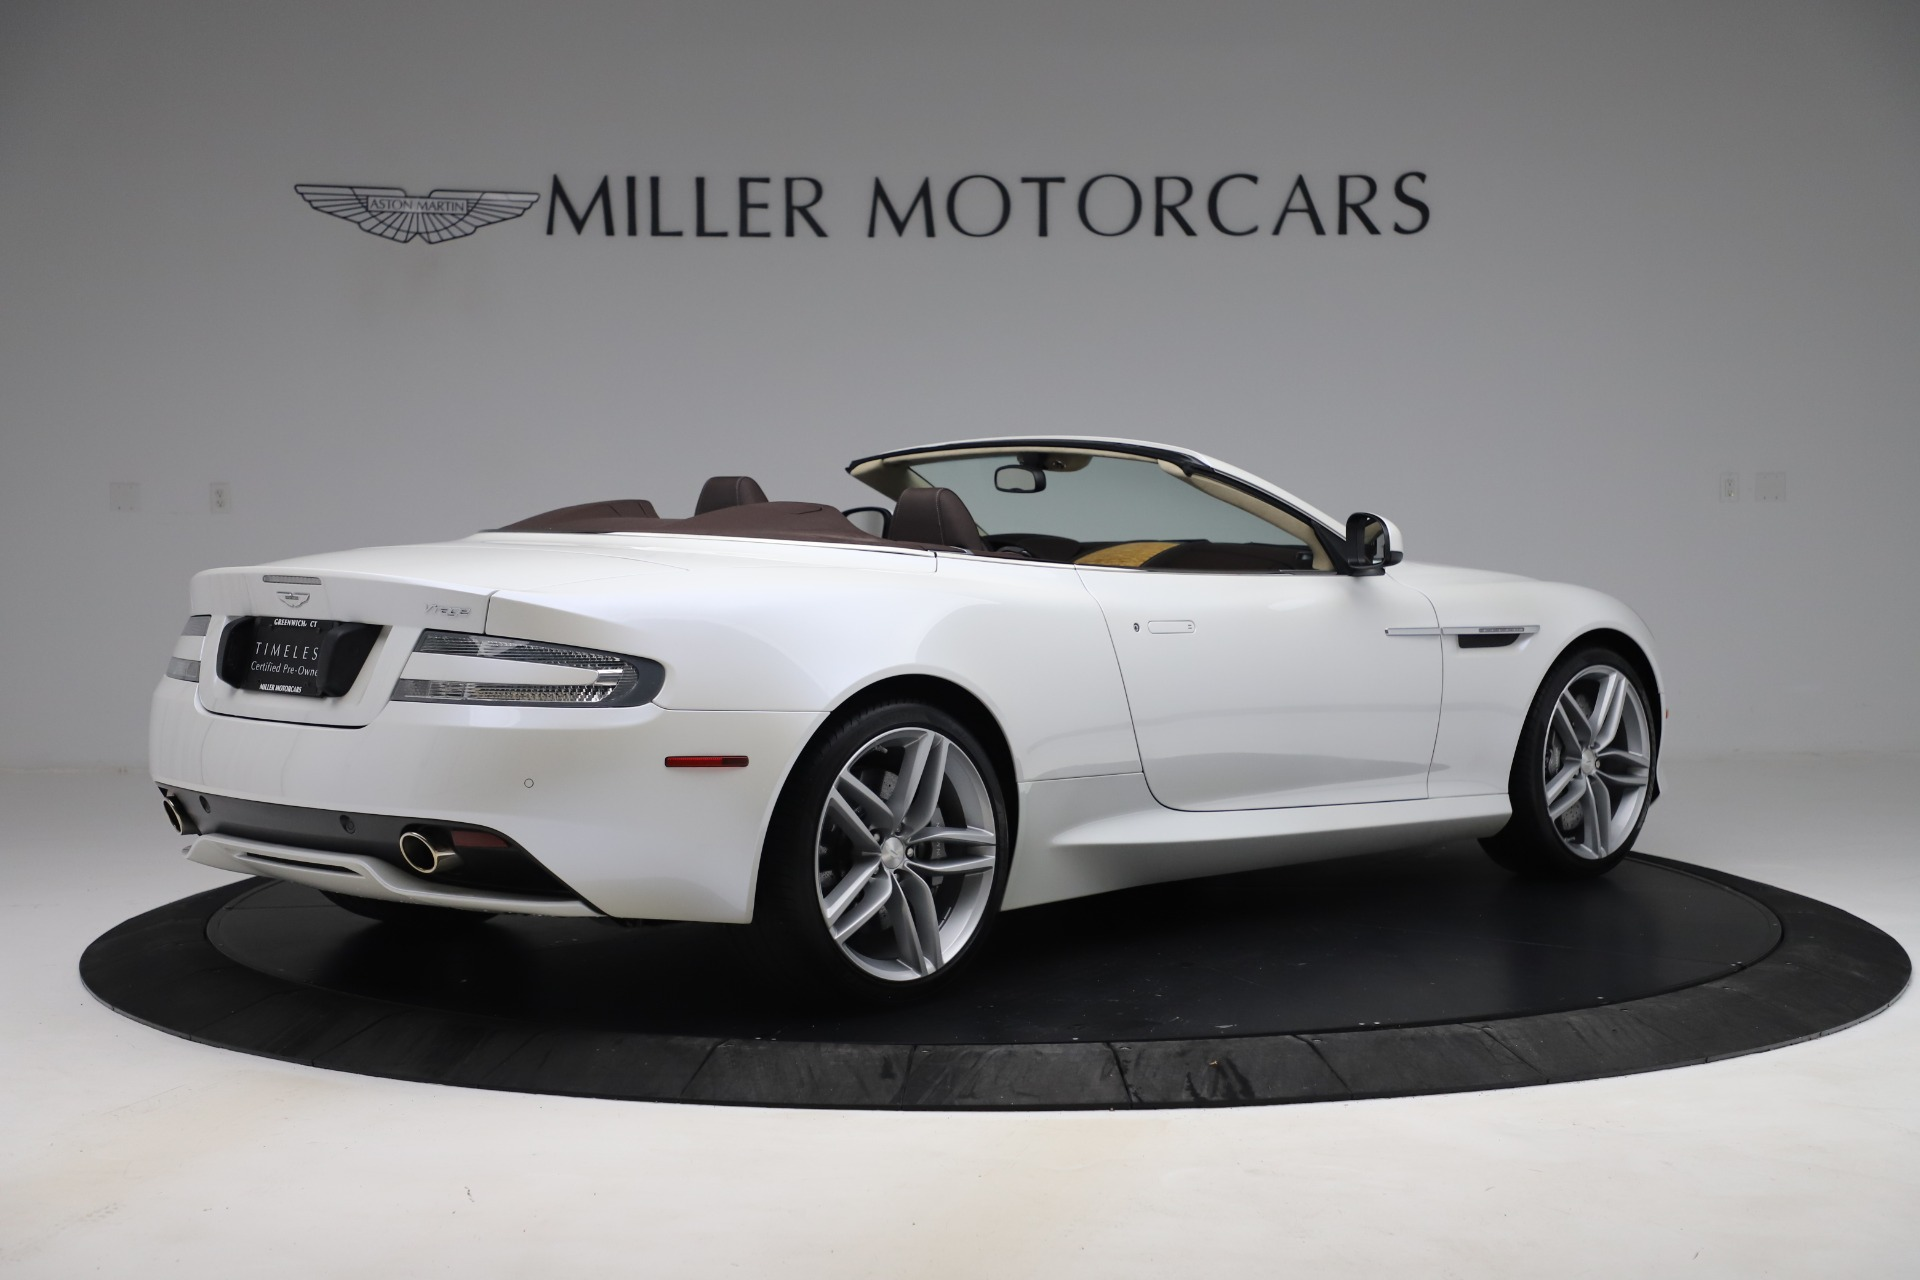 Used 2012 Aston Martin Virage Volante For Sale 89900 In Greenwich, CT